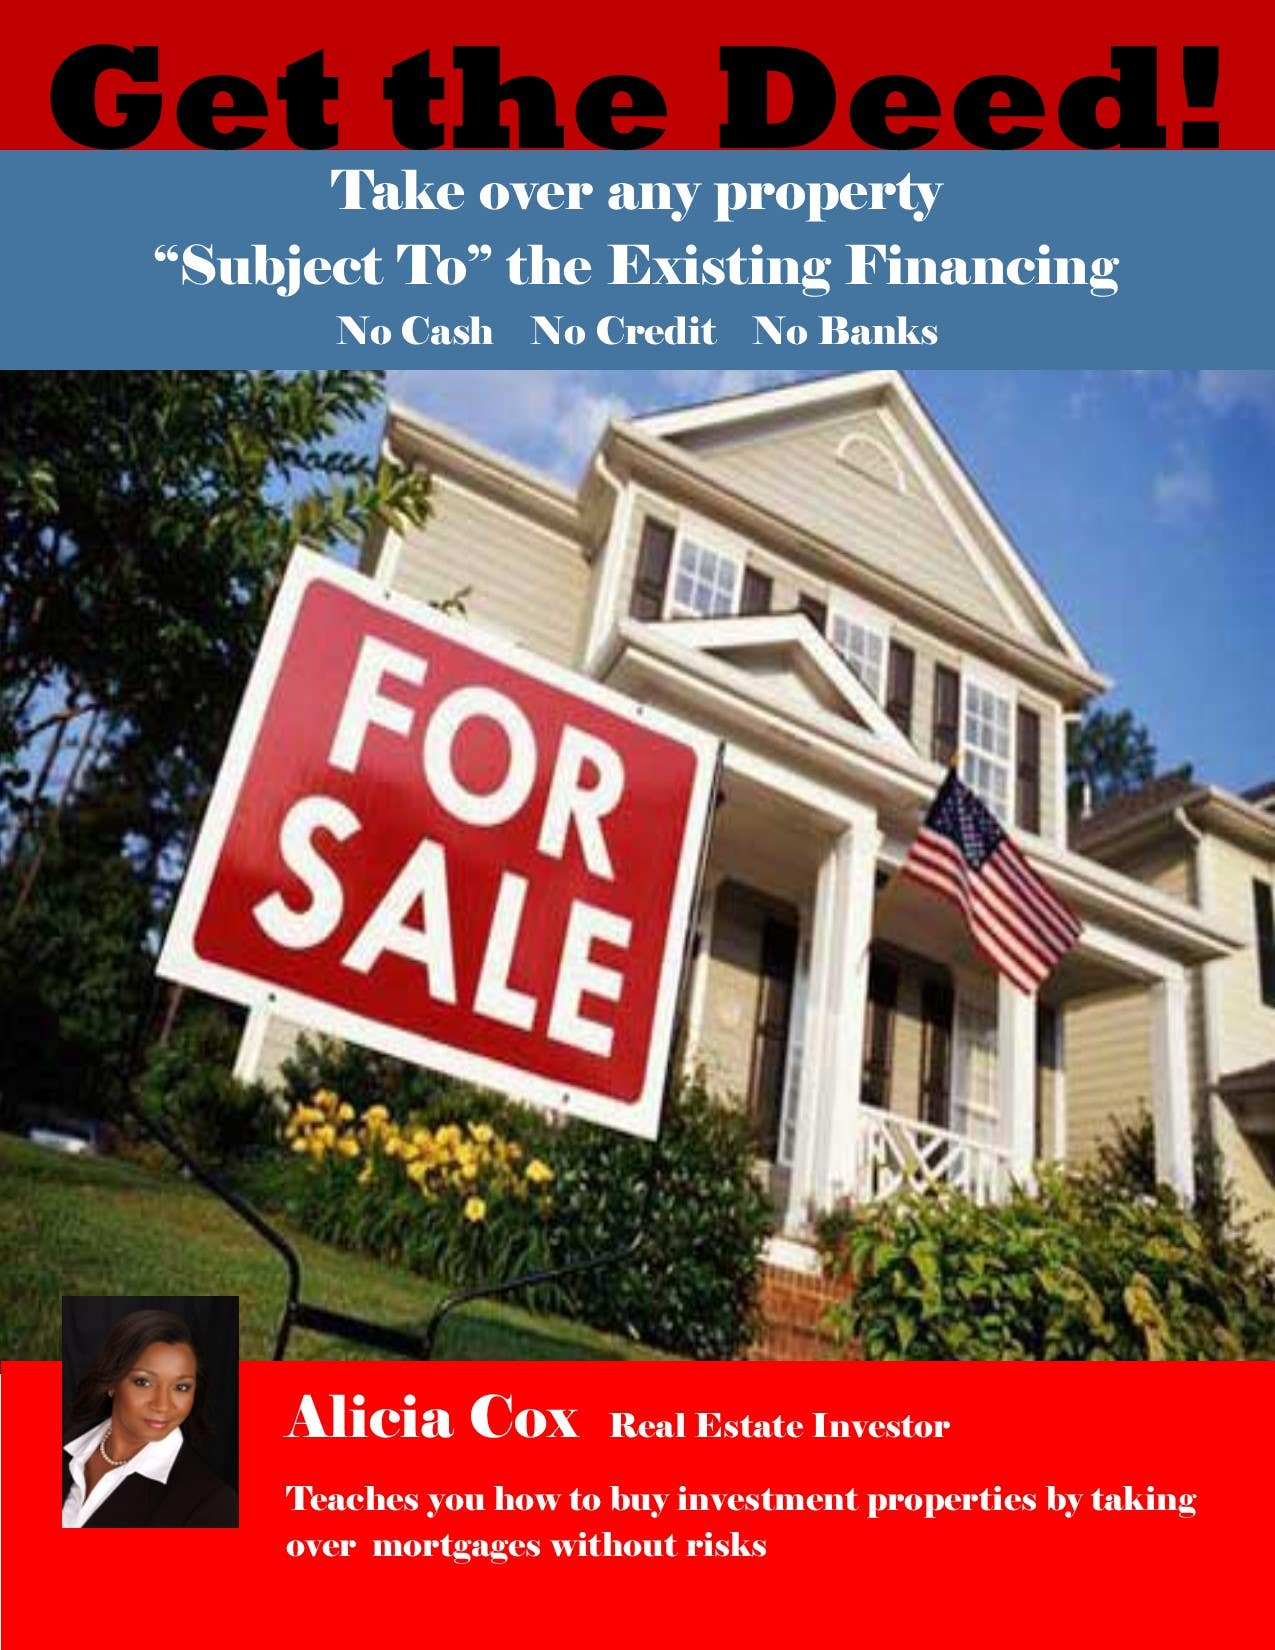 Get the Deed Subject-To the Existing Mortgage